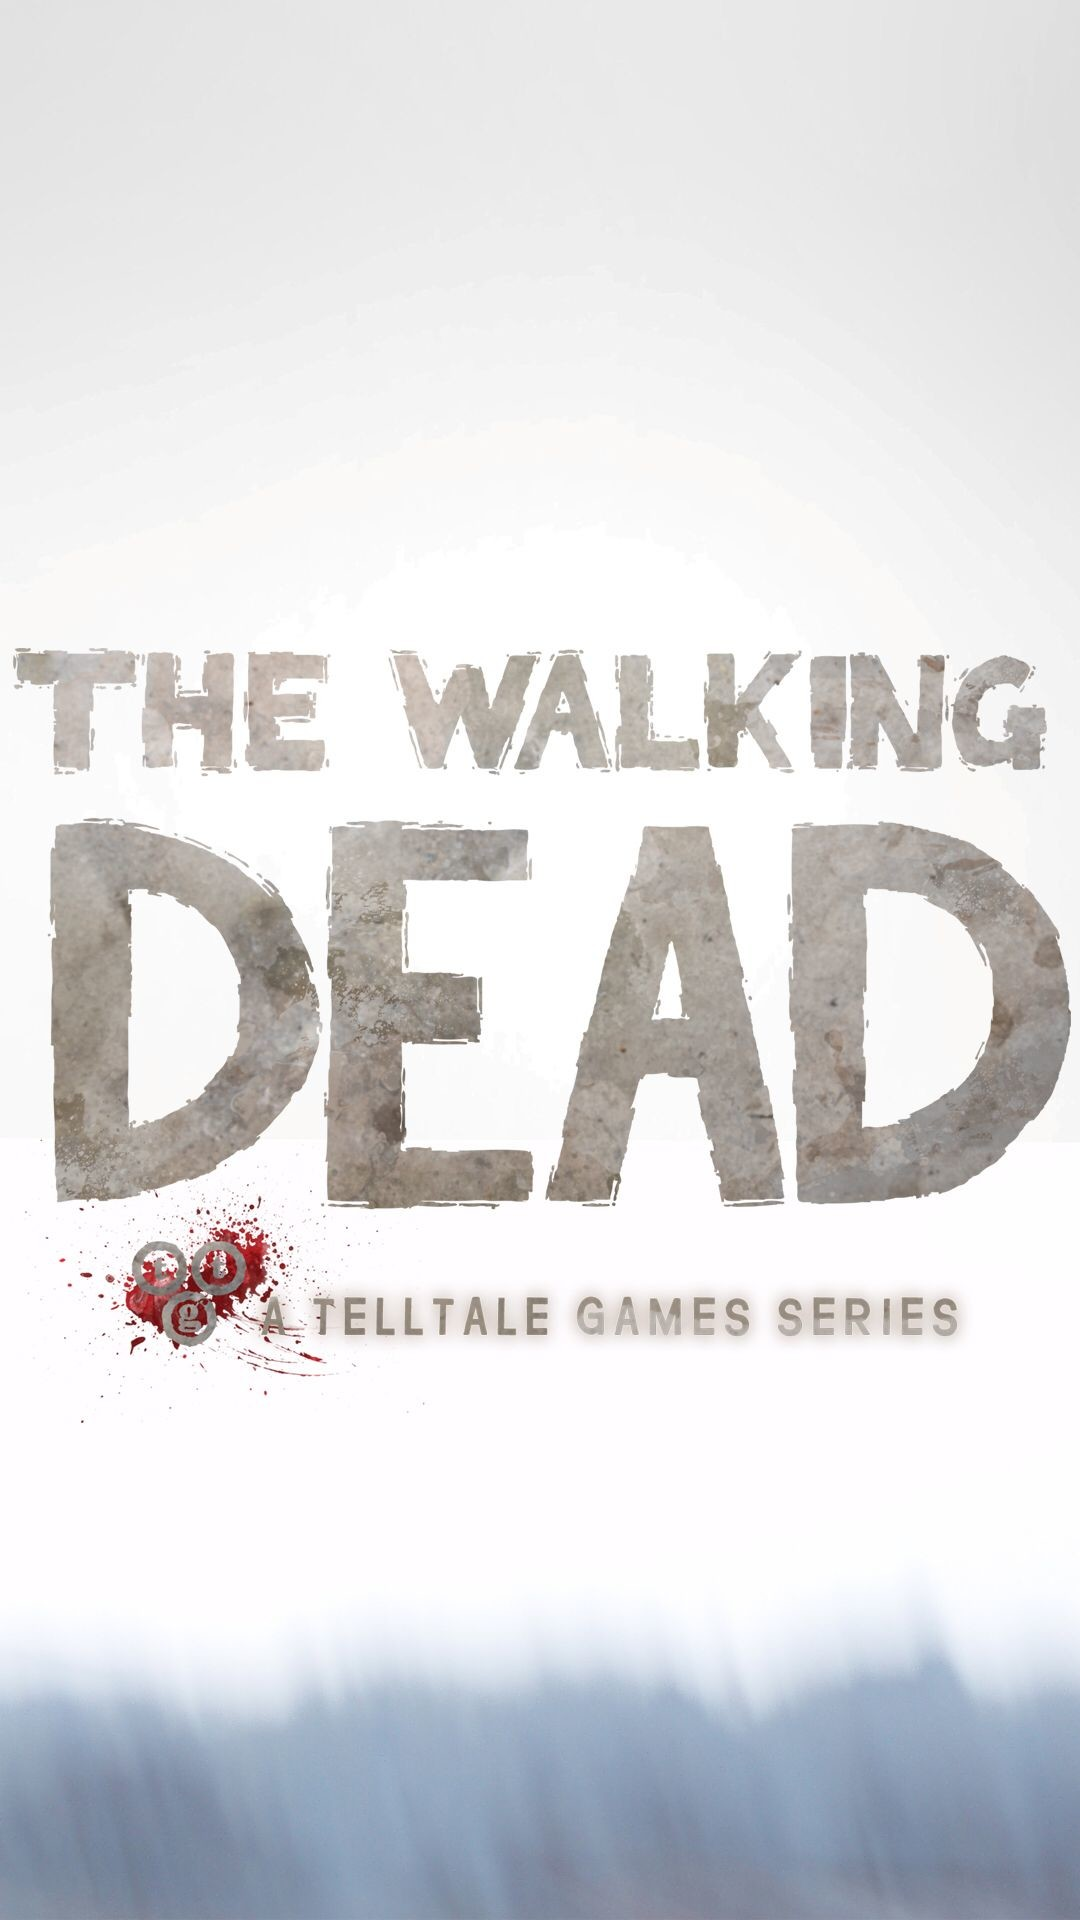 1080x1920 The walking dead game wallpaper iPhone 6 plus